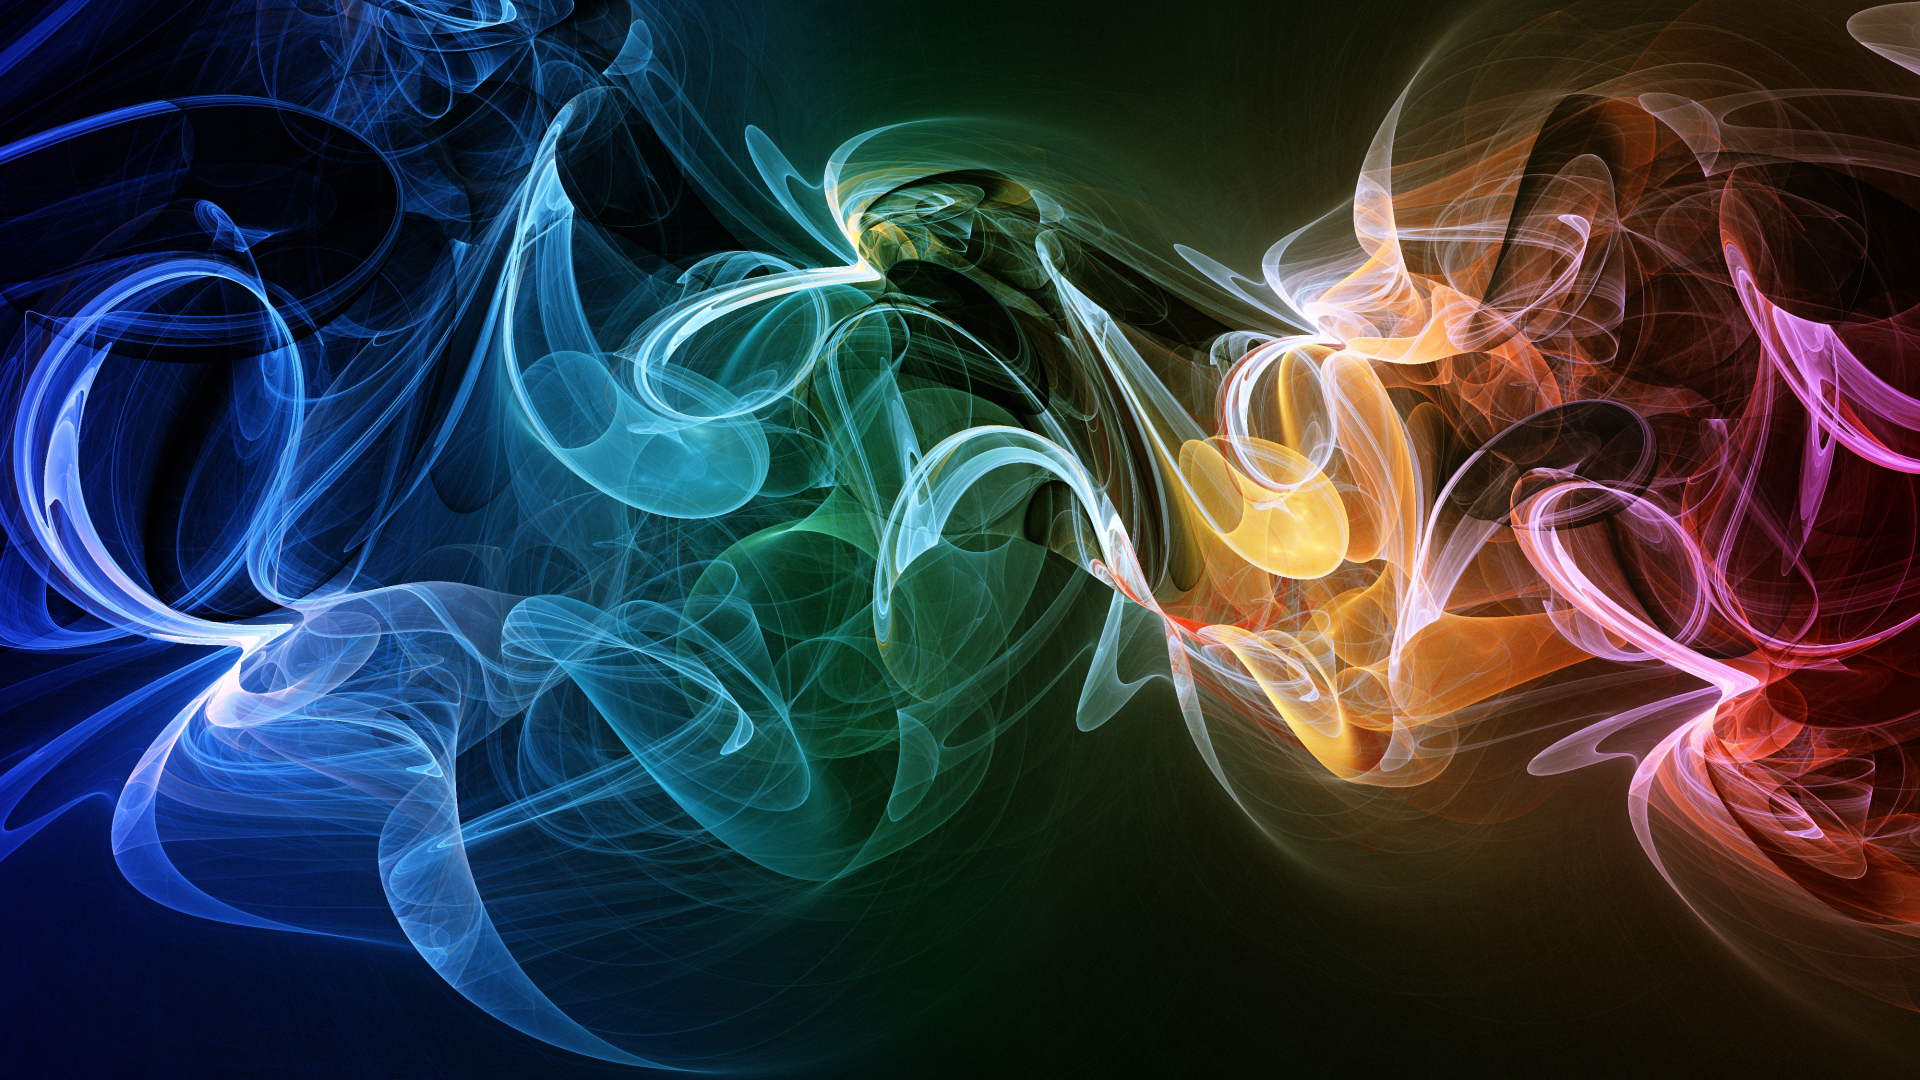 Abstract HD Wallpaper 1920x1080 1920x1080